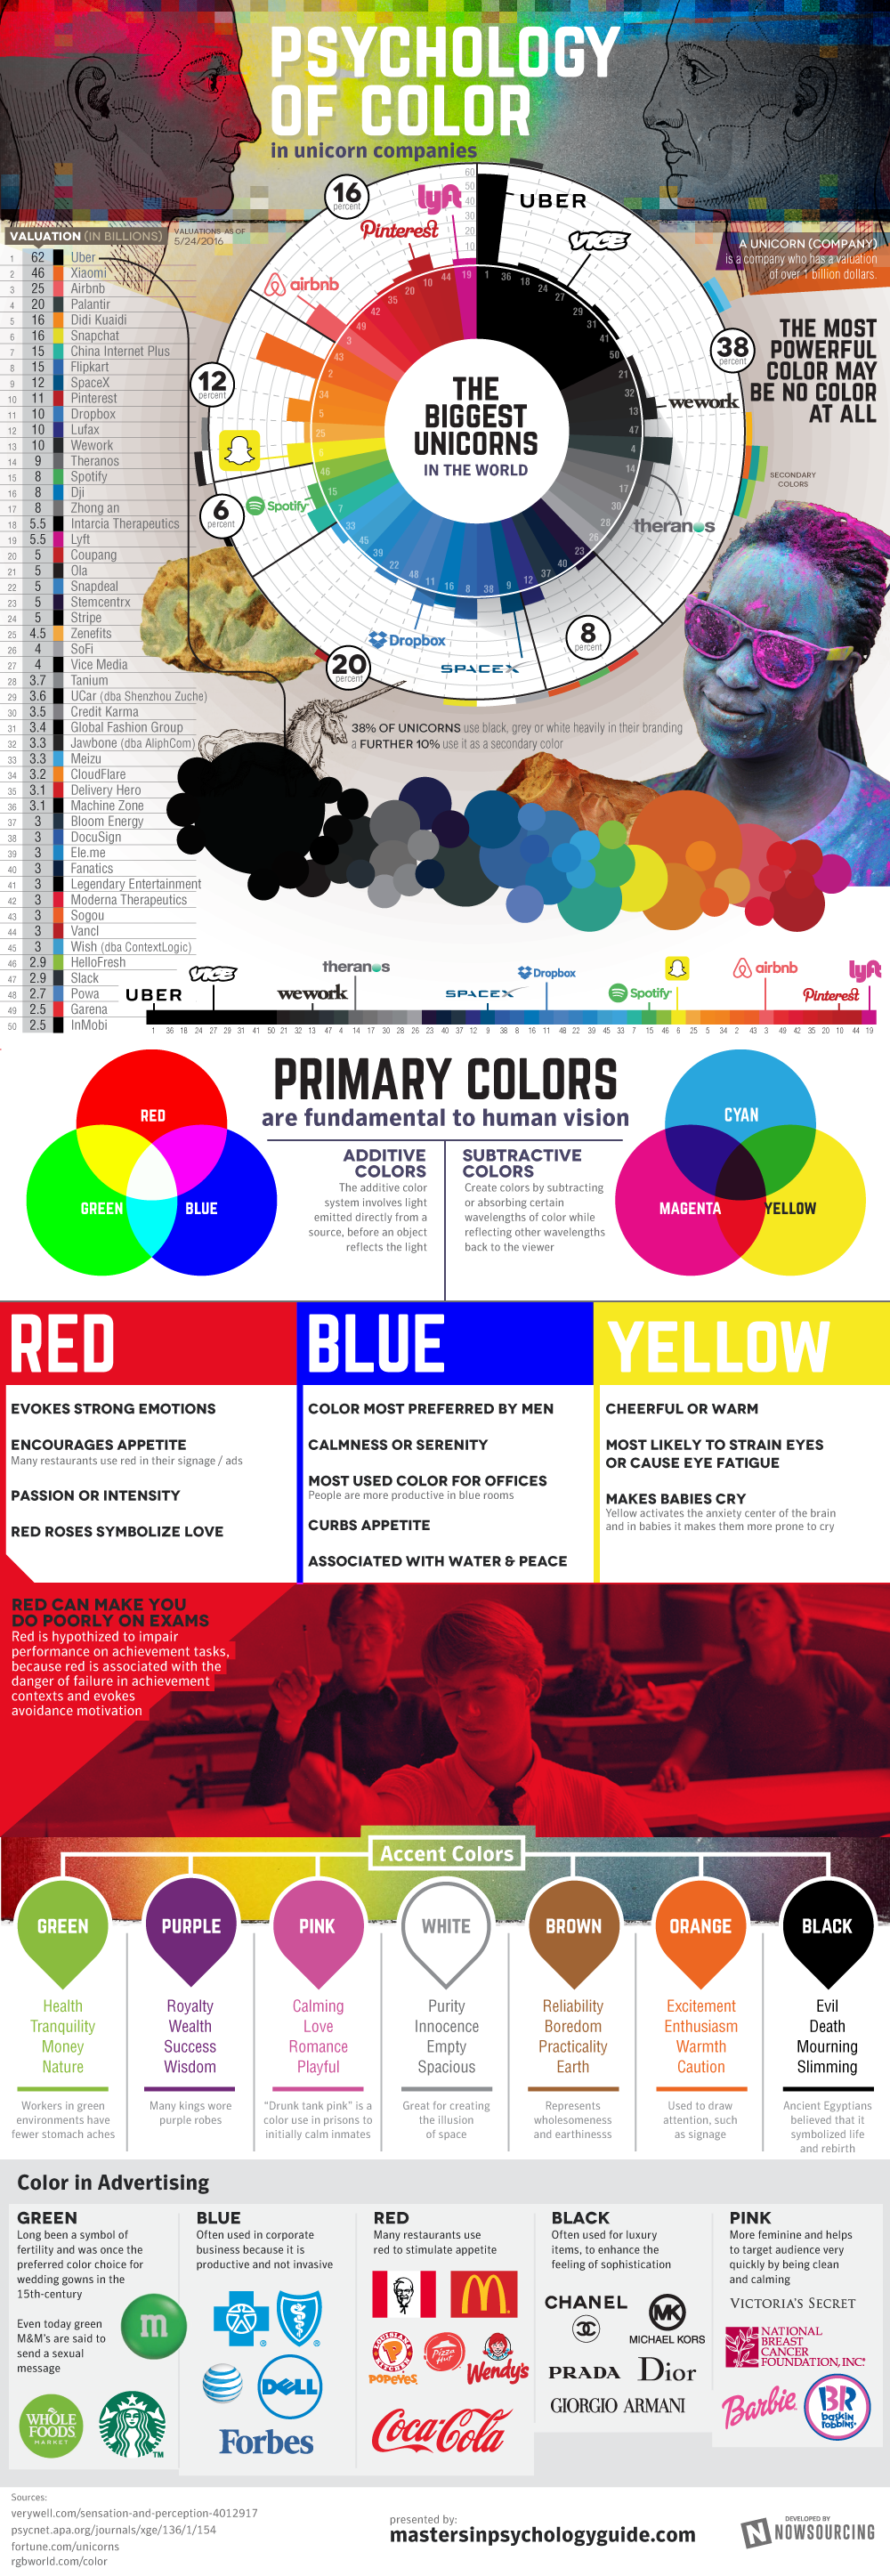 Psychology of Color in Unicorn Companies | Masters In Psychology Guide